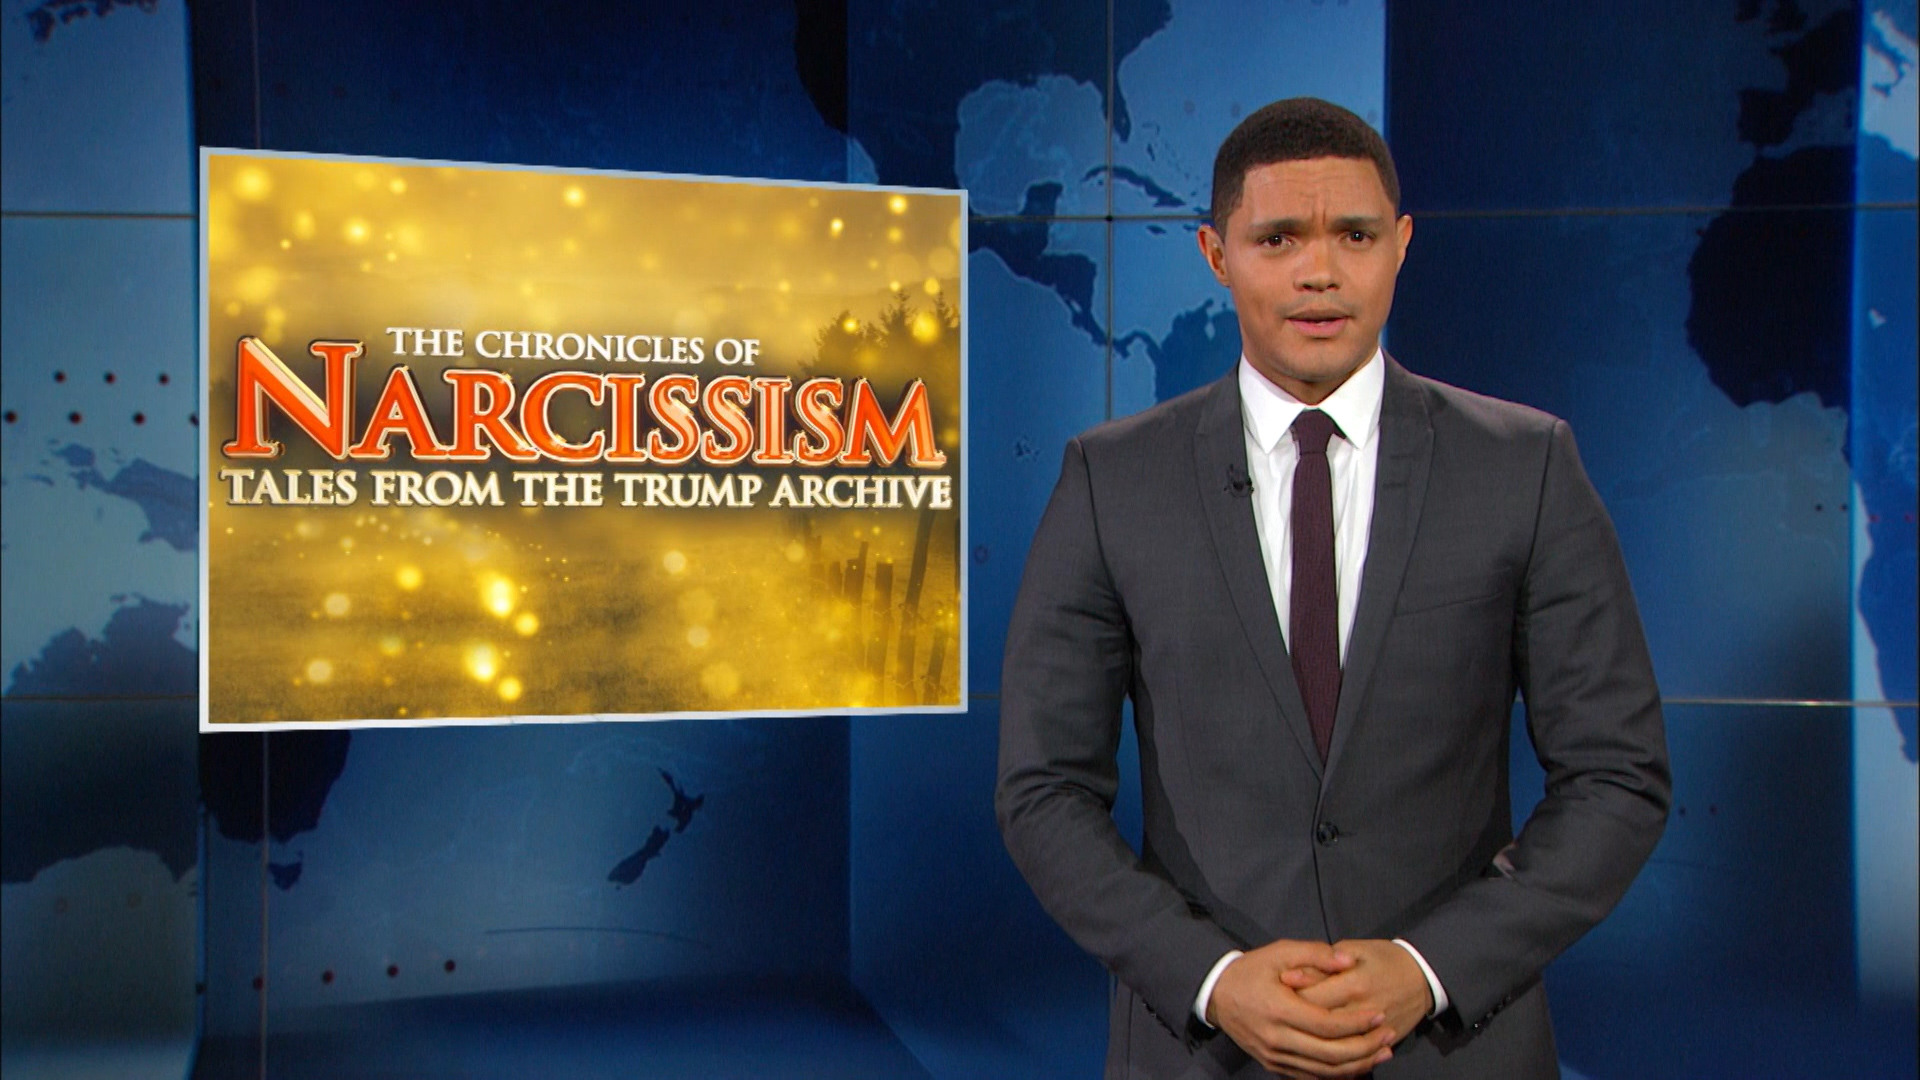 THE DAILY SHOW - TALES FROM THE TRUMP ARCHIVE